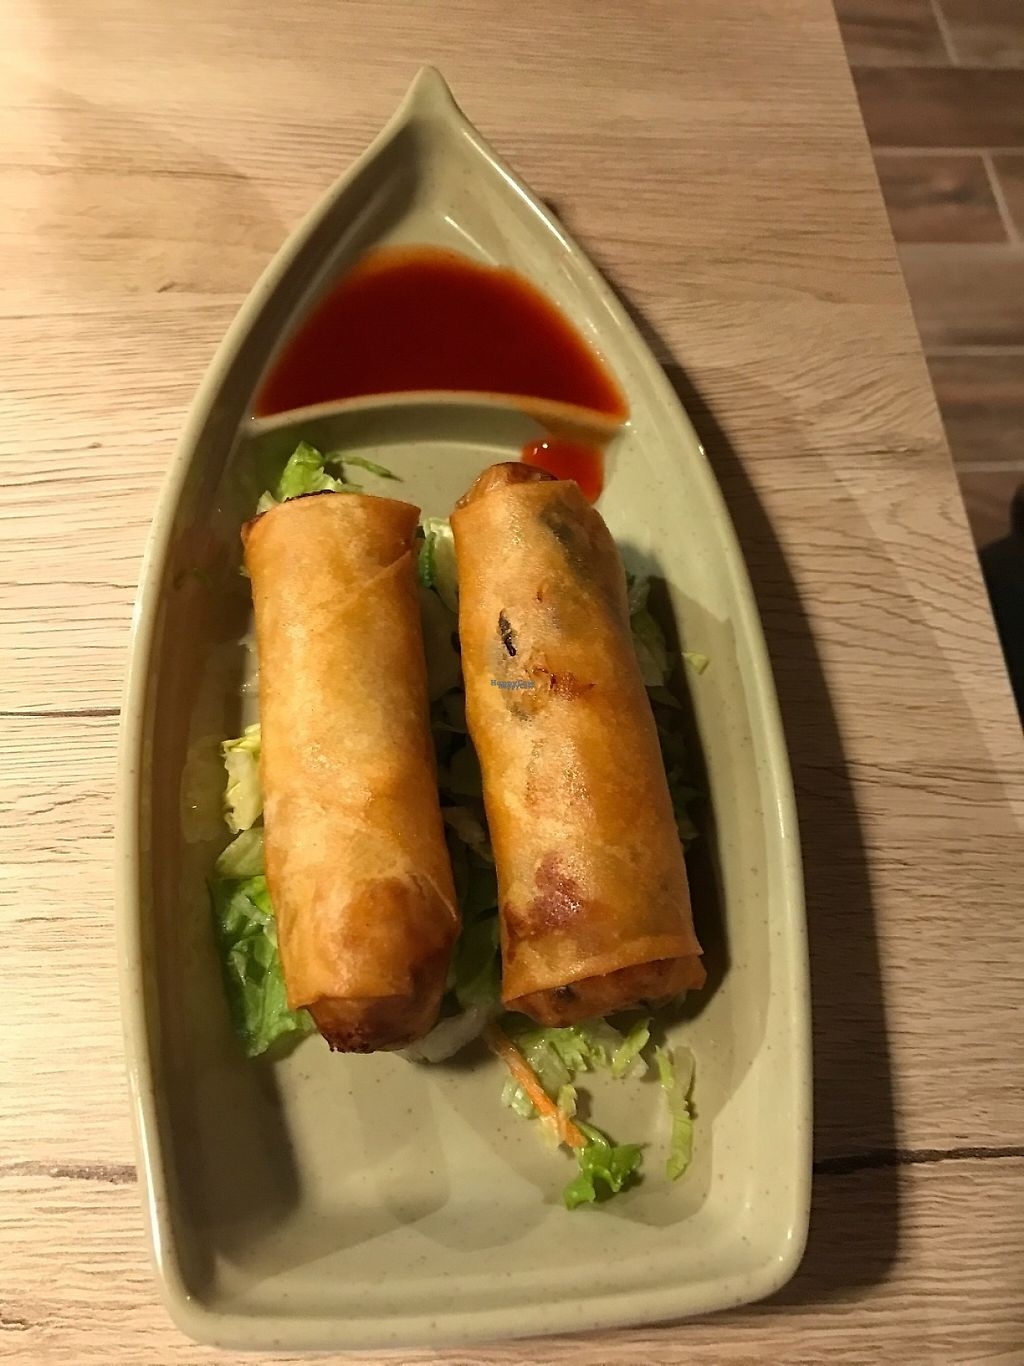 """Photo of Veggie Village  by <a href=""""/members/profile/Tigra220"""">Tigra220</a> <br/>House Spring Rolls <br/> January 27, 2017  - <a href='/contact/abuse/image/76977/217944'>Report</a>"""